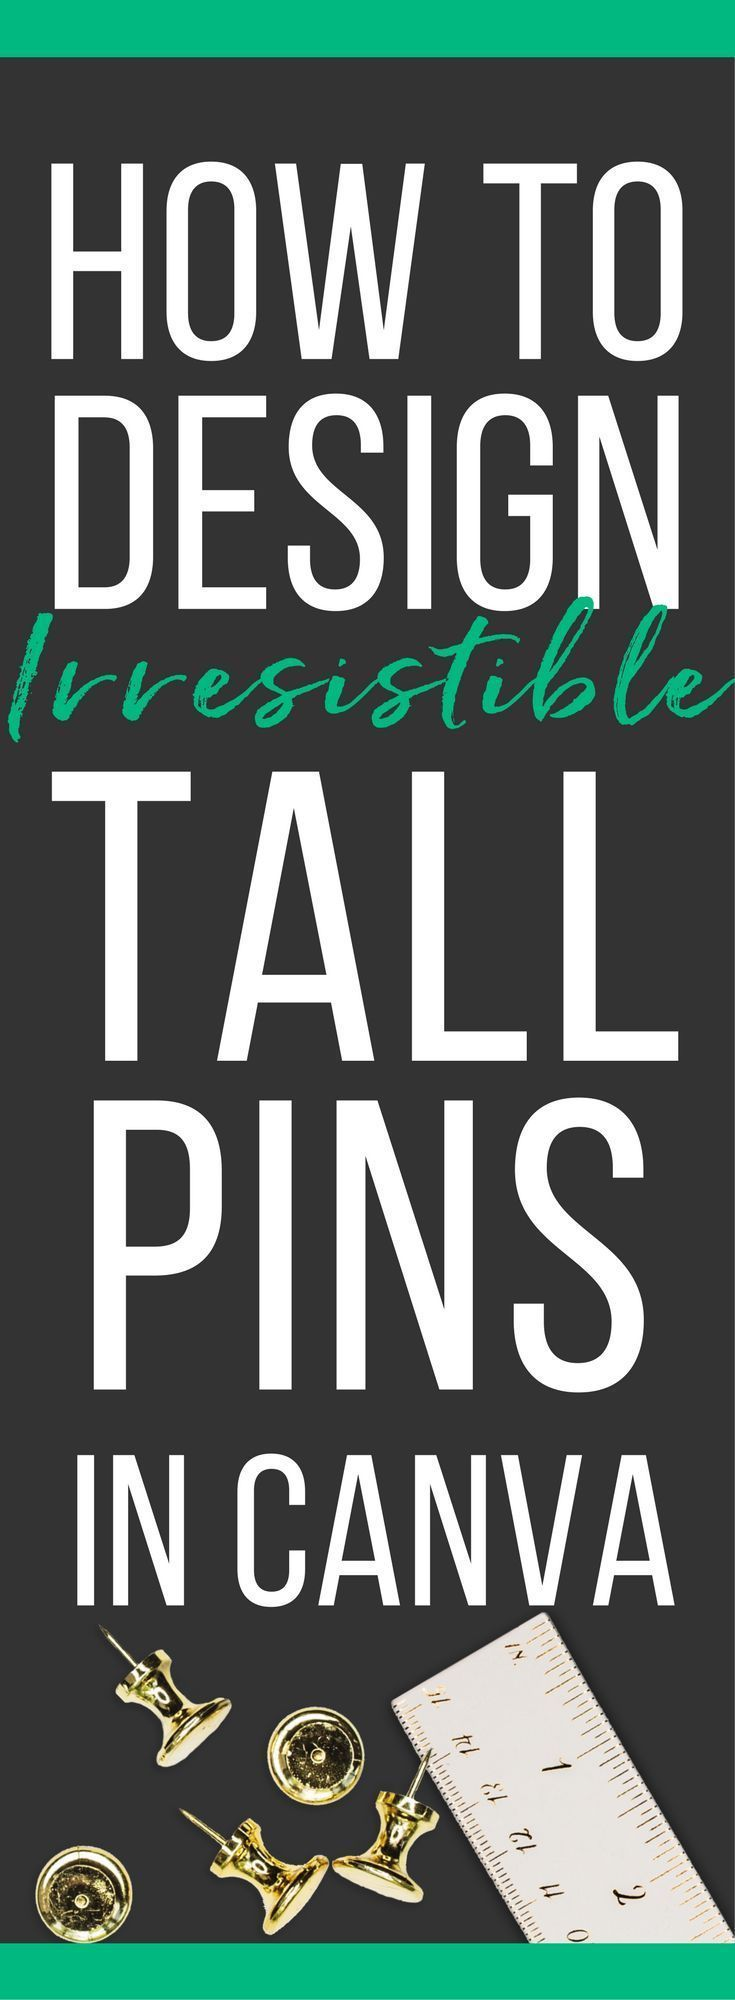 How To Design Irresistible Tall Pins In Canva Quotes